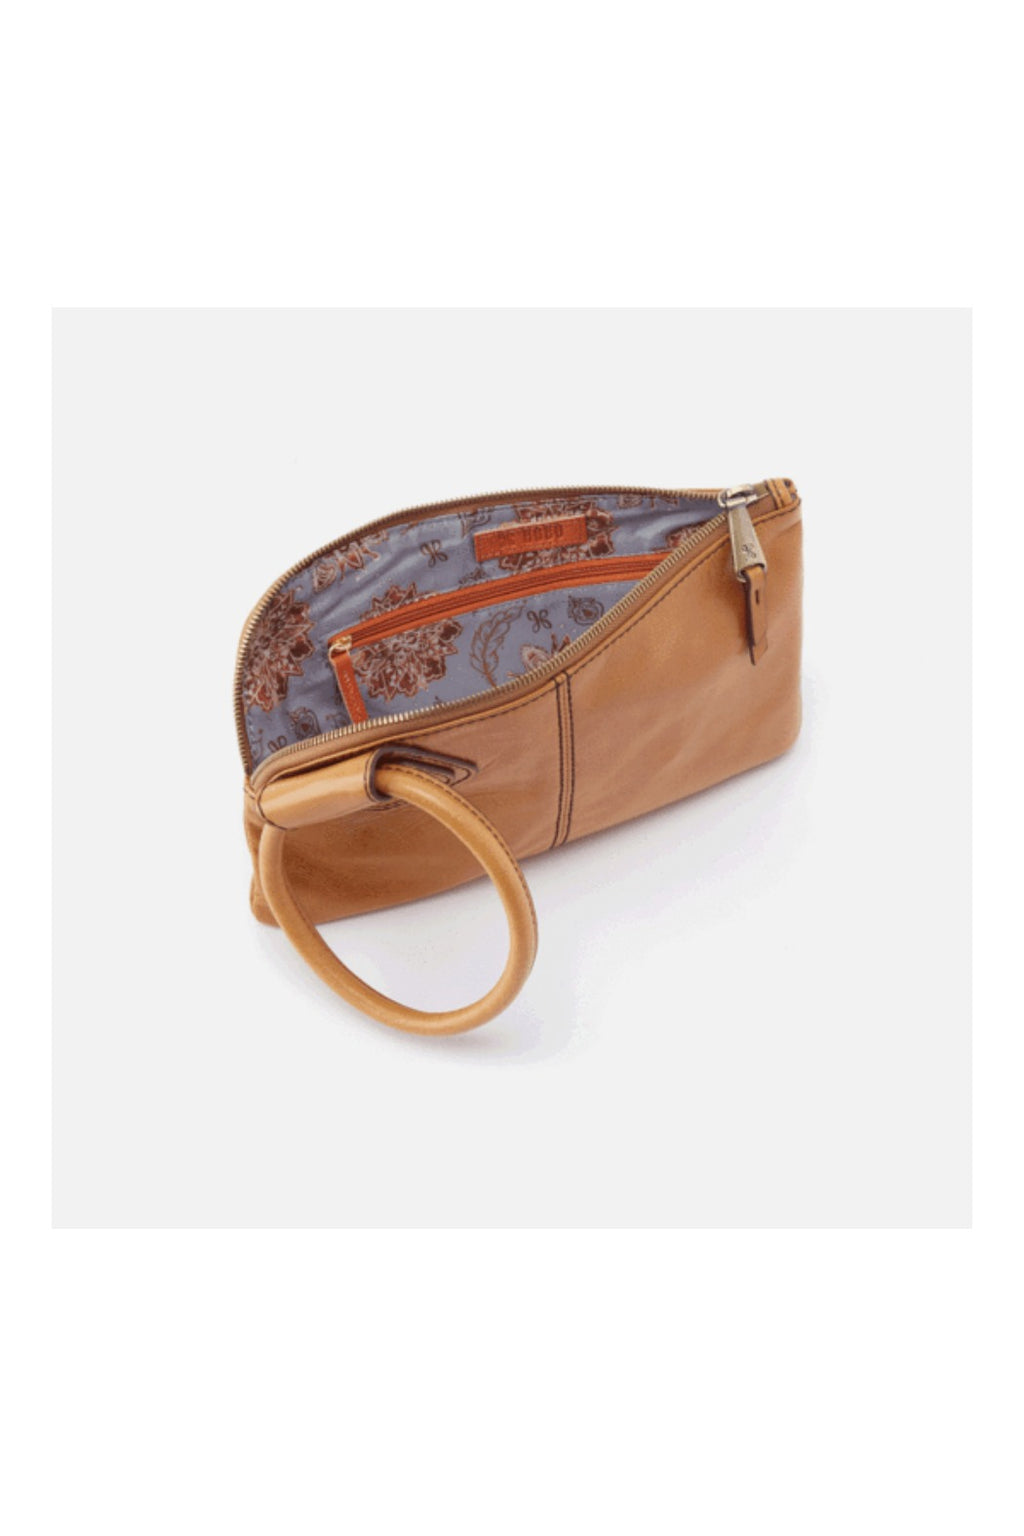 Hobo Sable Wristlet - Honey